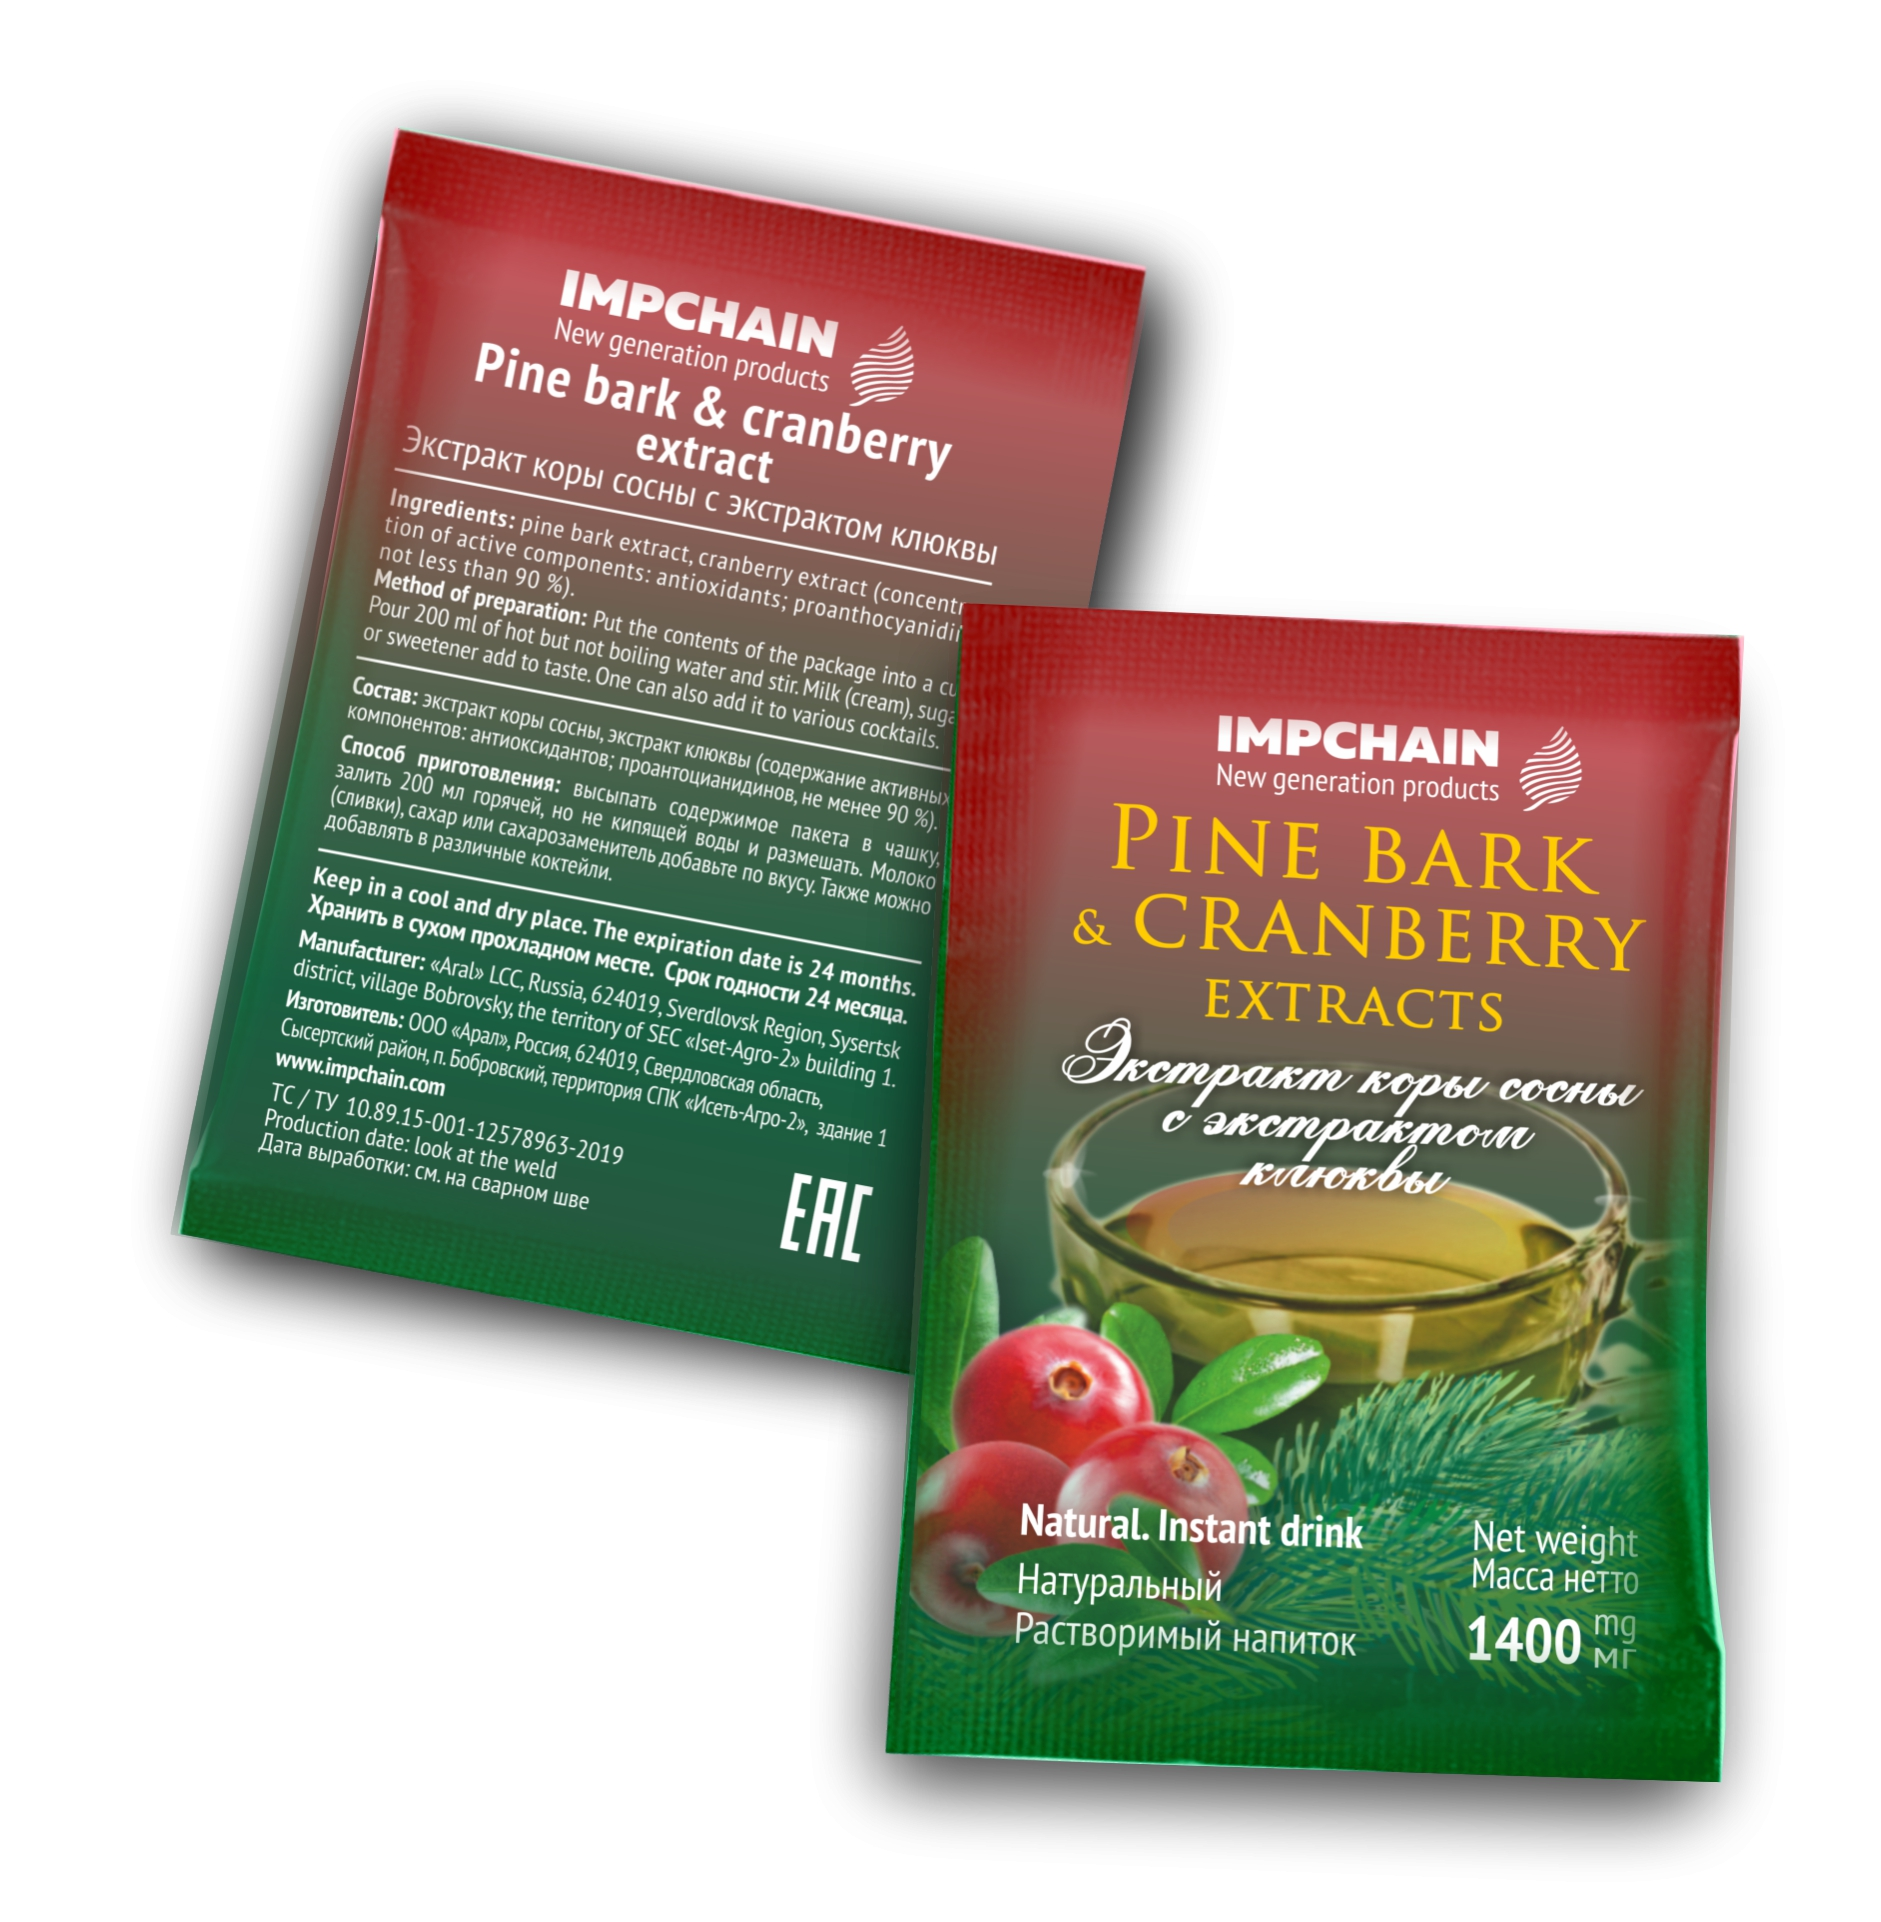 Pine bark extract with cranberry extract. Instant drink. The price is indicated for the 1st package. The price of a bag is 20 rubles.